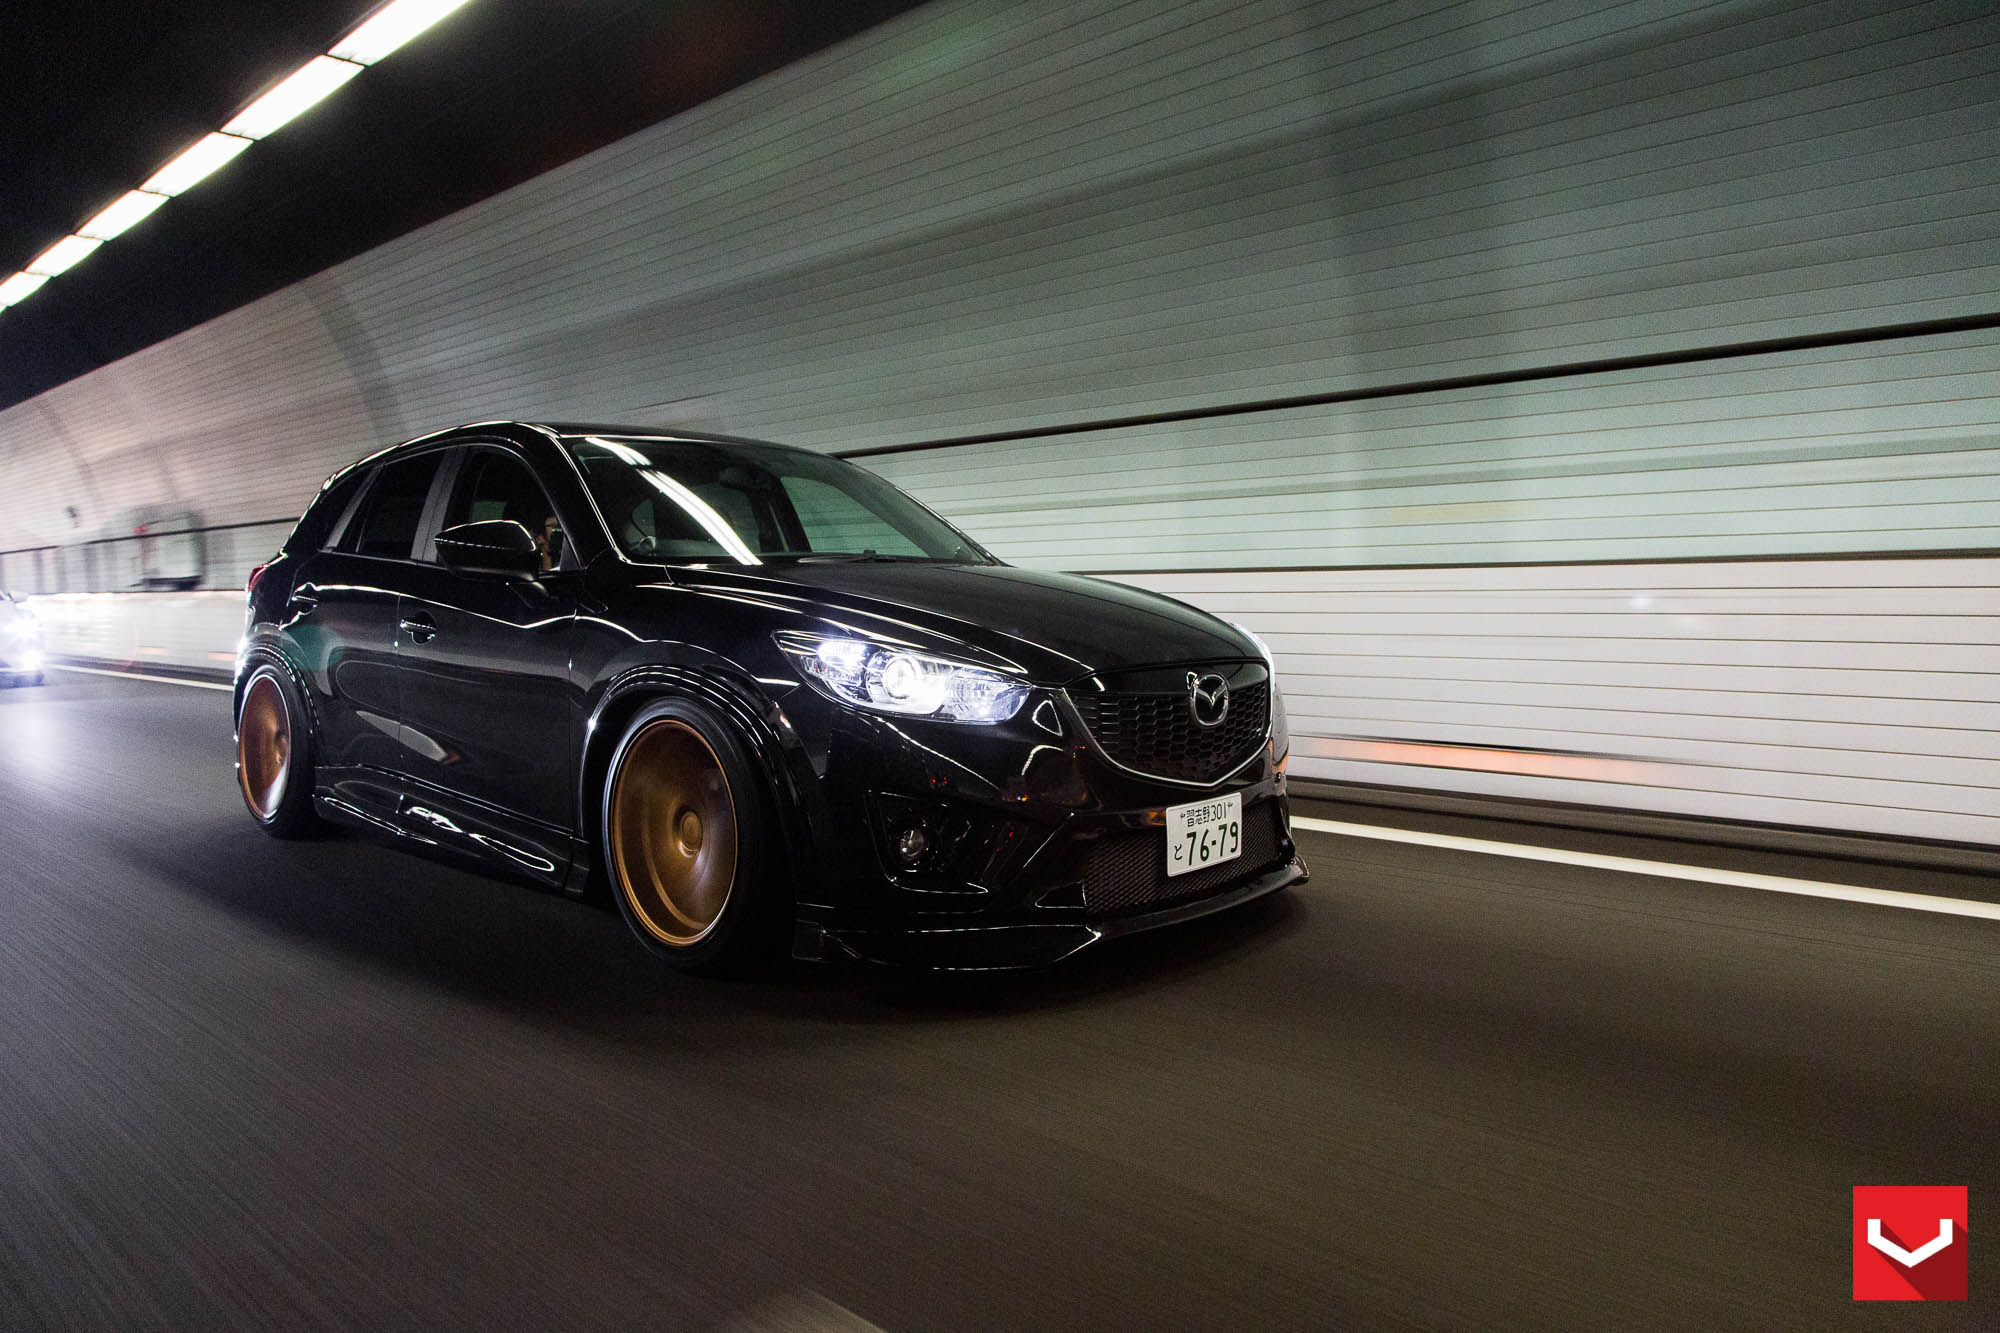 Mazda Cx Tuned With Vossen Wheels And Air Suspension Photo Gallery on Mazda 3 Sedan Home